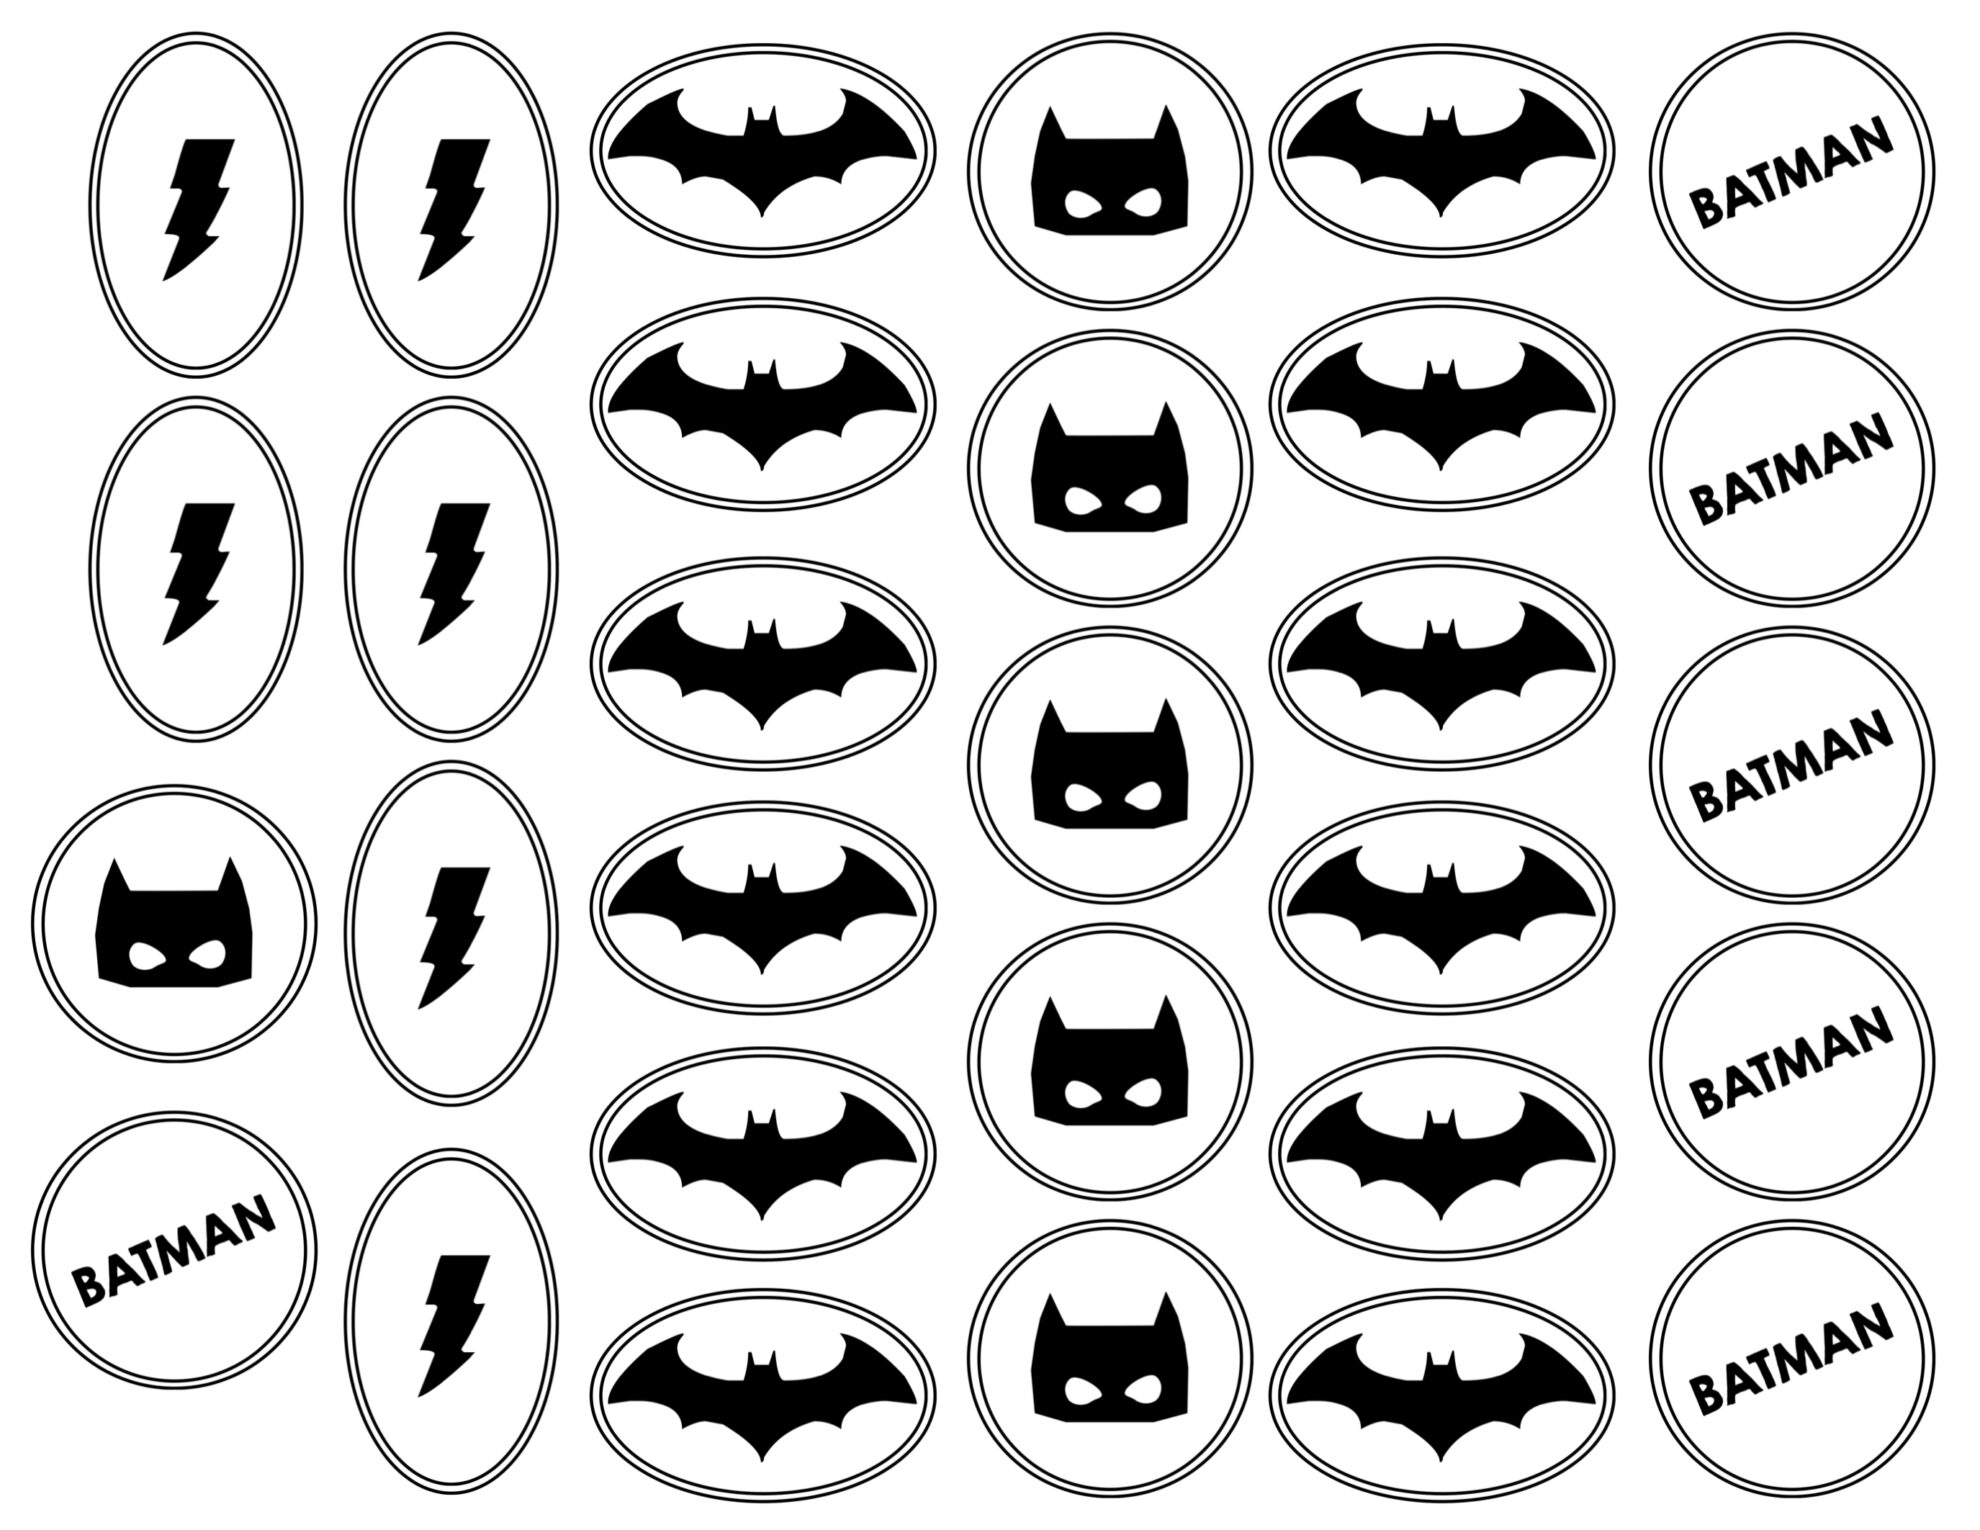 photograph regarding Batman Cupcake Toppers Printable identify Batman Cupcake Topper Printables - Paper Path Design and style